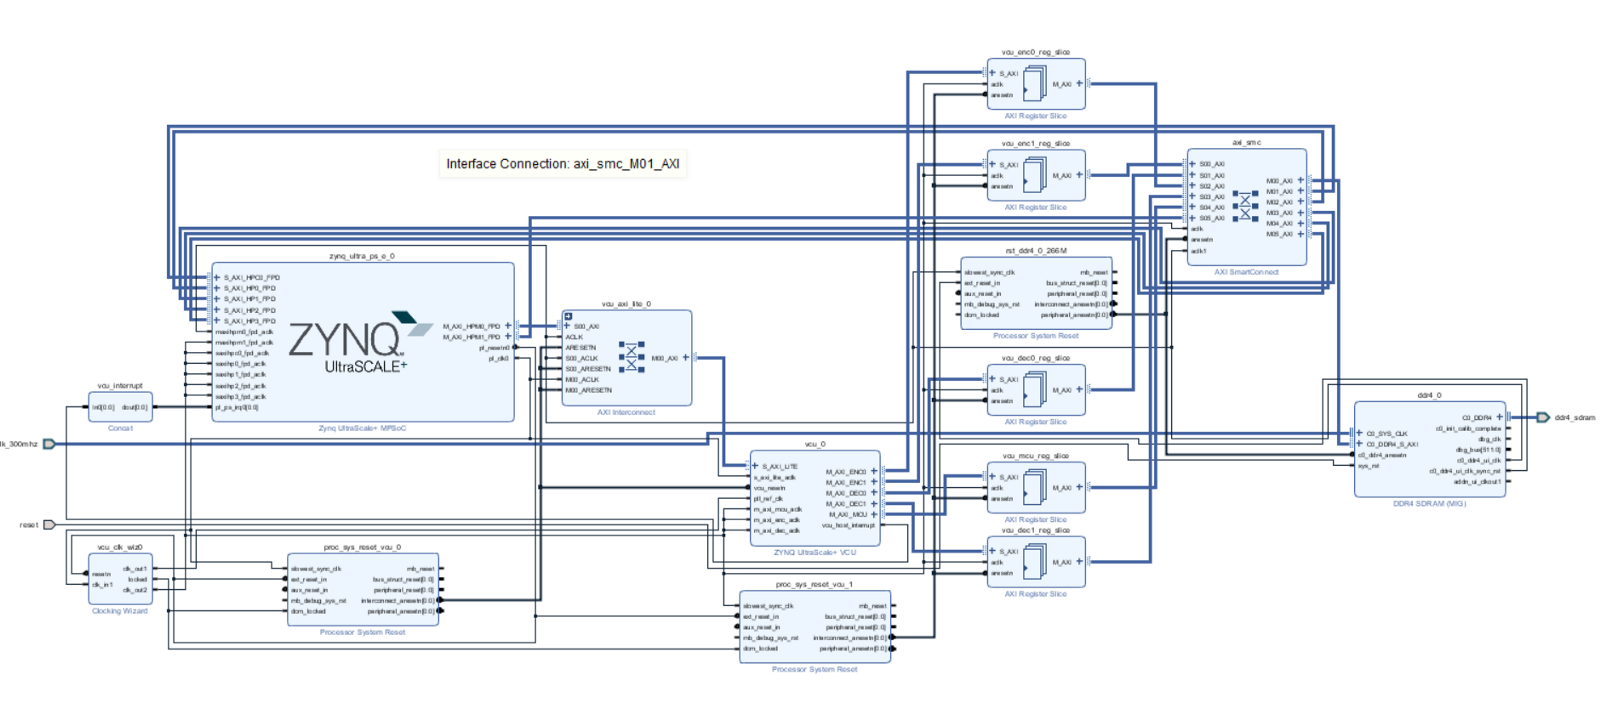 Microzed Chronicles A Look At The Zynq Mpsoc Ev H265 Video Codec H 264 Encoder Block Diagram Explanation Actual Vcu Implementation Using Both Pl And Ps Ddr Memory